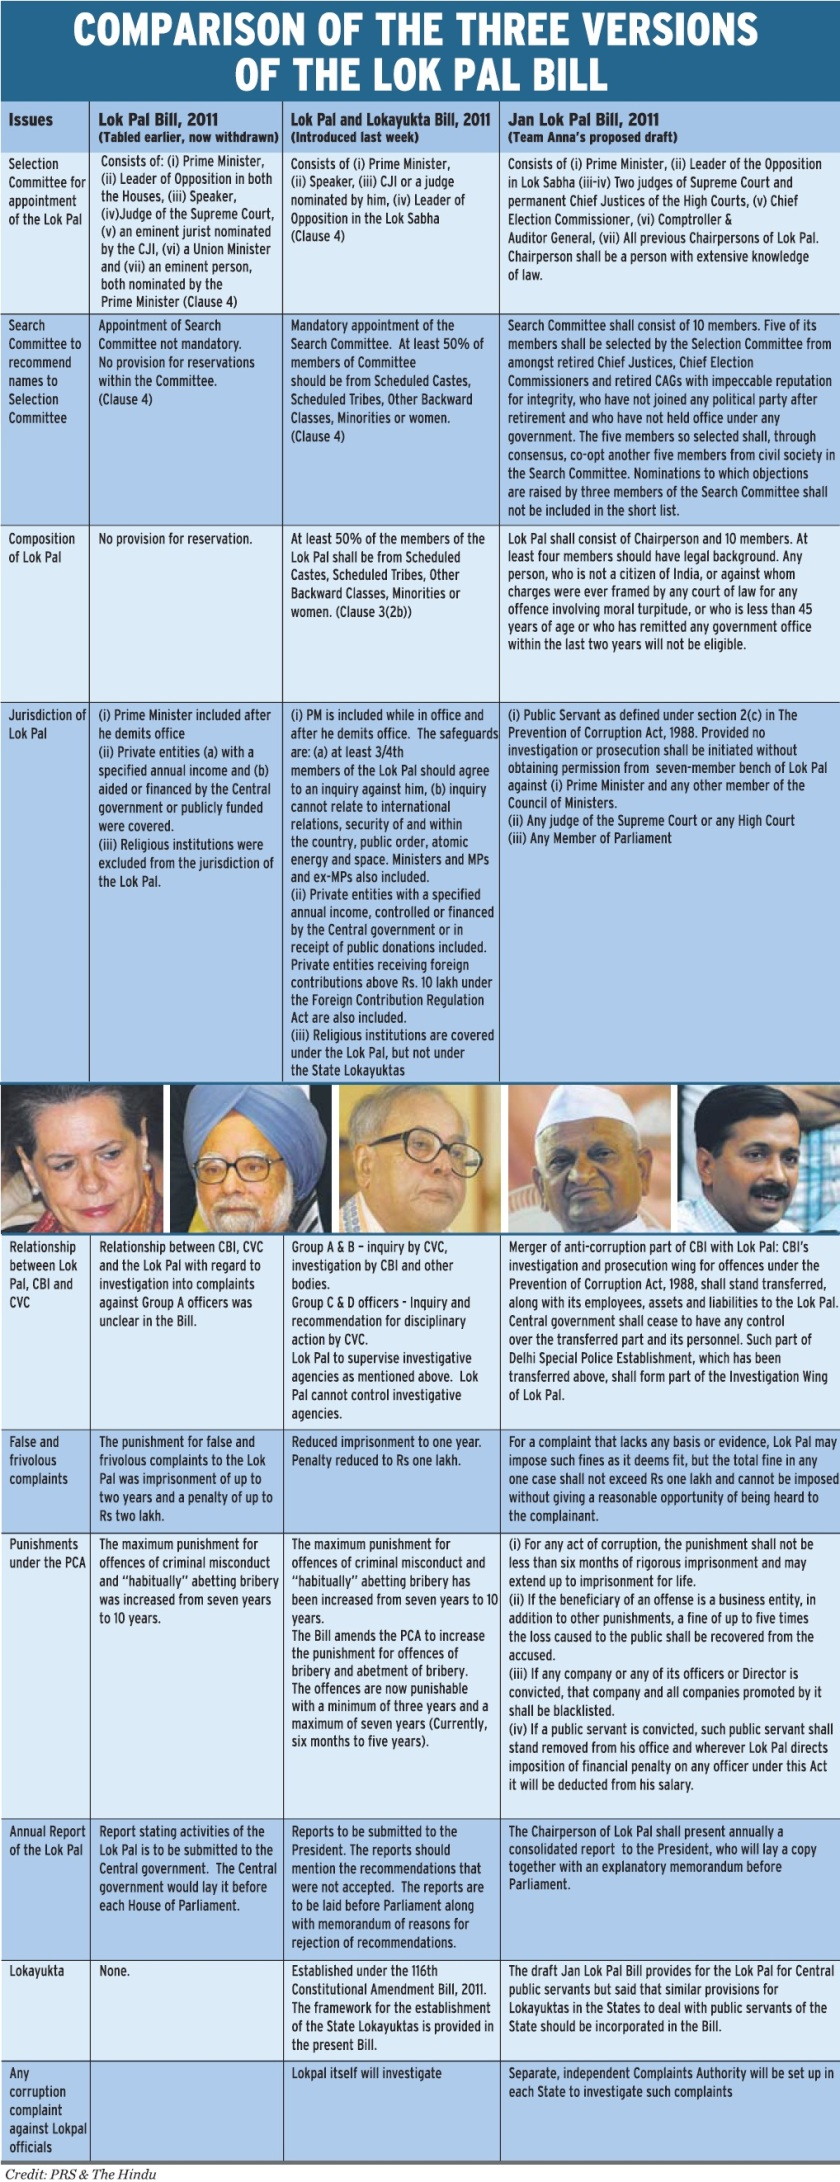 Comparison of the three versions of the Lokpal Bill